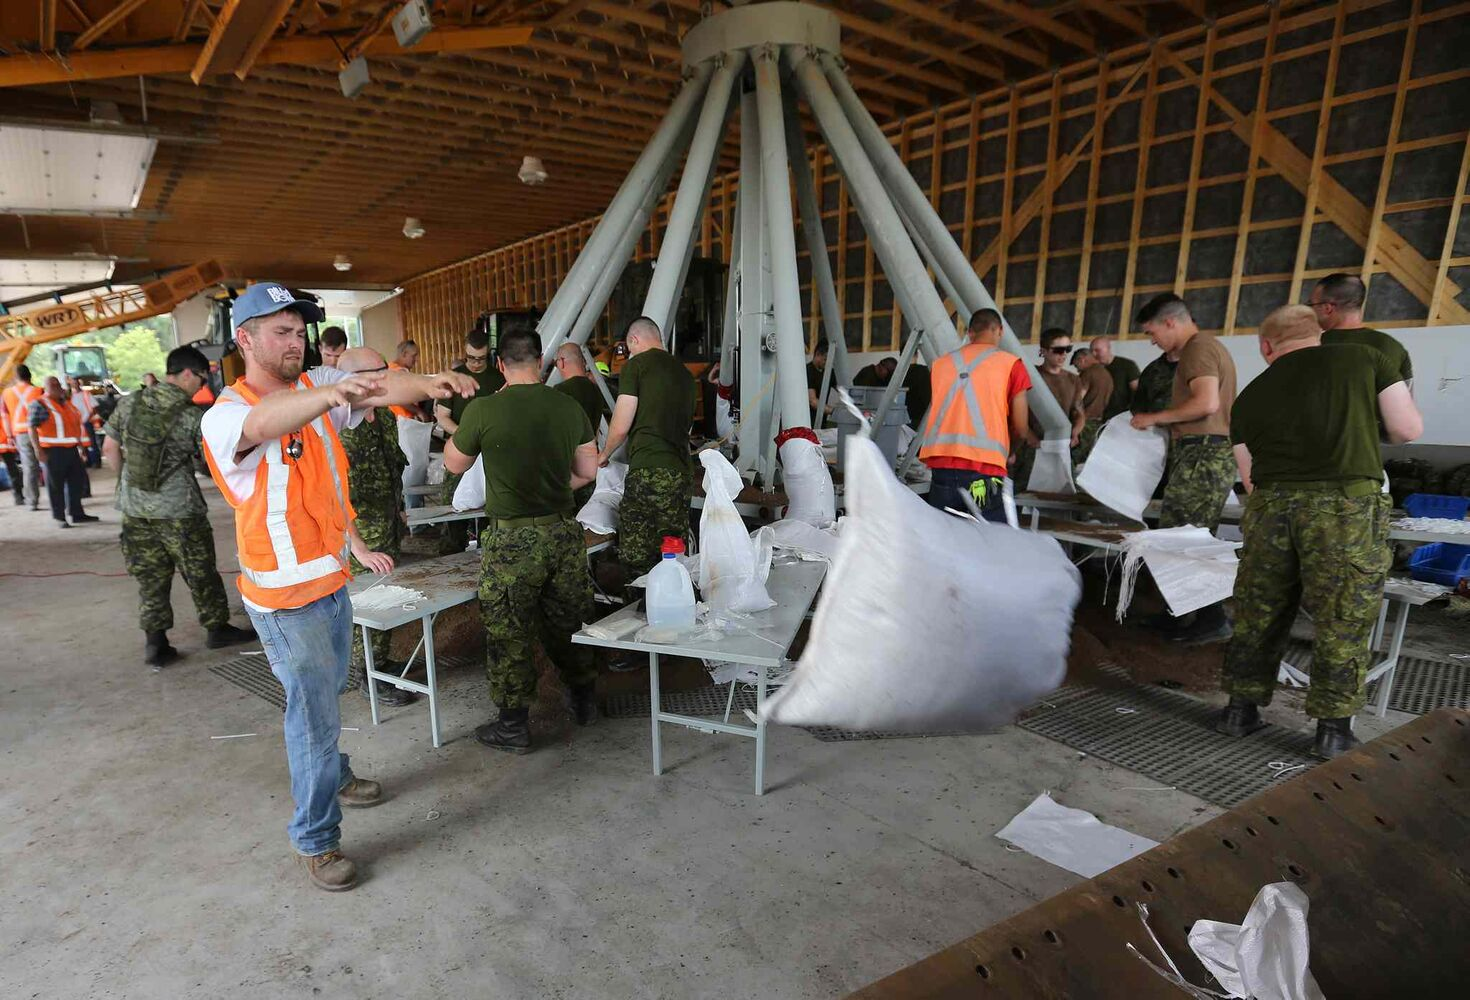 Soldiers from CFB Shilo and workers from the Municipality of Portage la Prairie work to make sandbags at the Portage Yard on Saturday. (TREVOR HAGAN/WINNIPEG FREE PRESS)